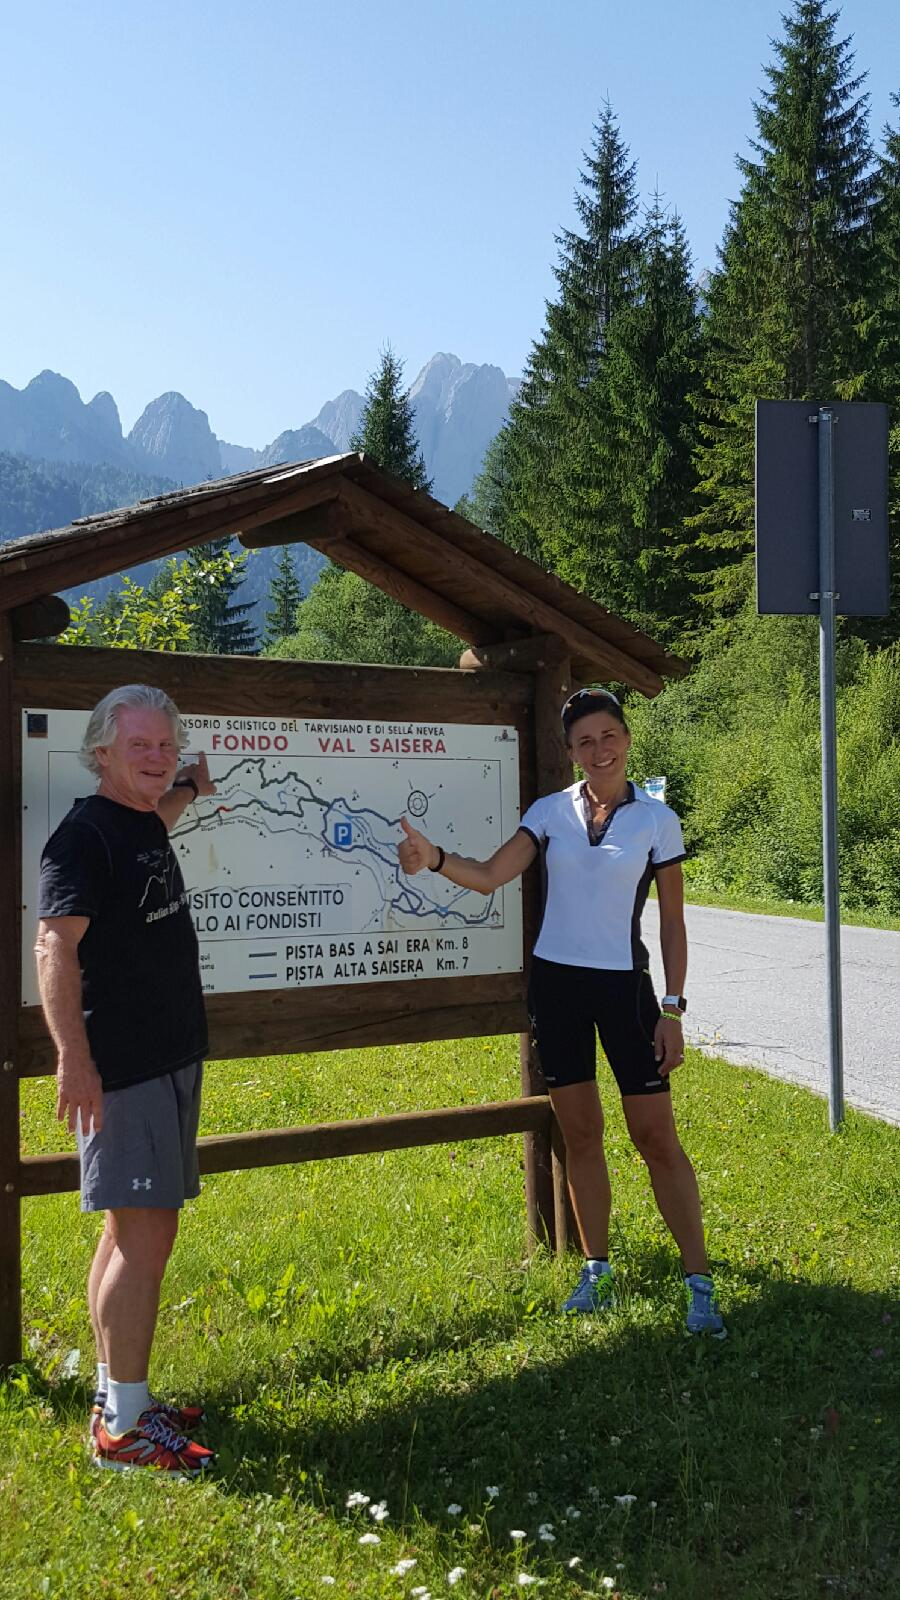 Kelly and Gabriella look at the map of the cross country ski trails in the Valley.